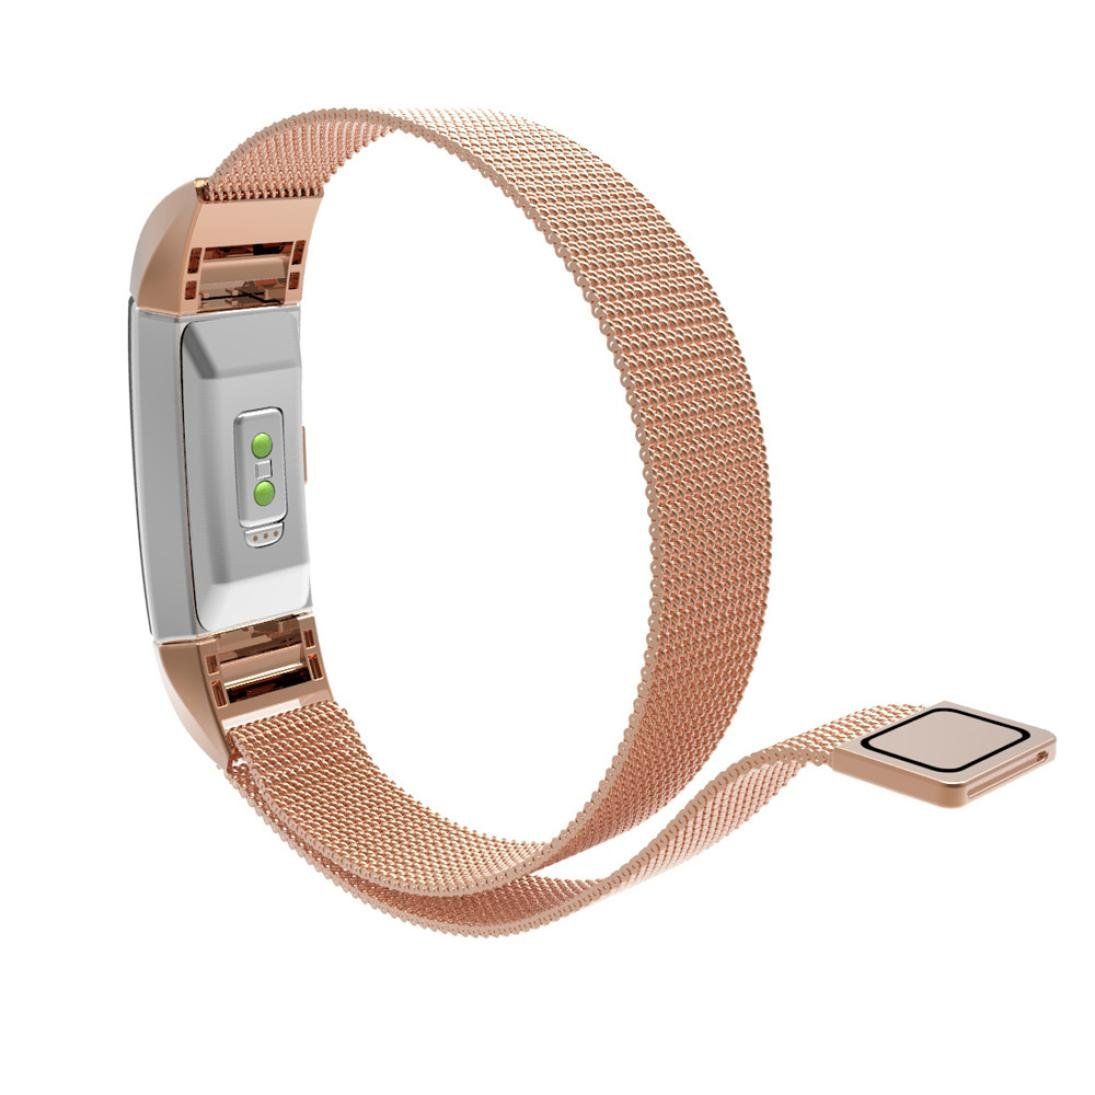 Creazy milanese stainless steel watch band strap bracelet for fitbit